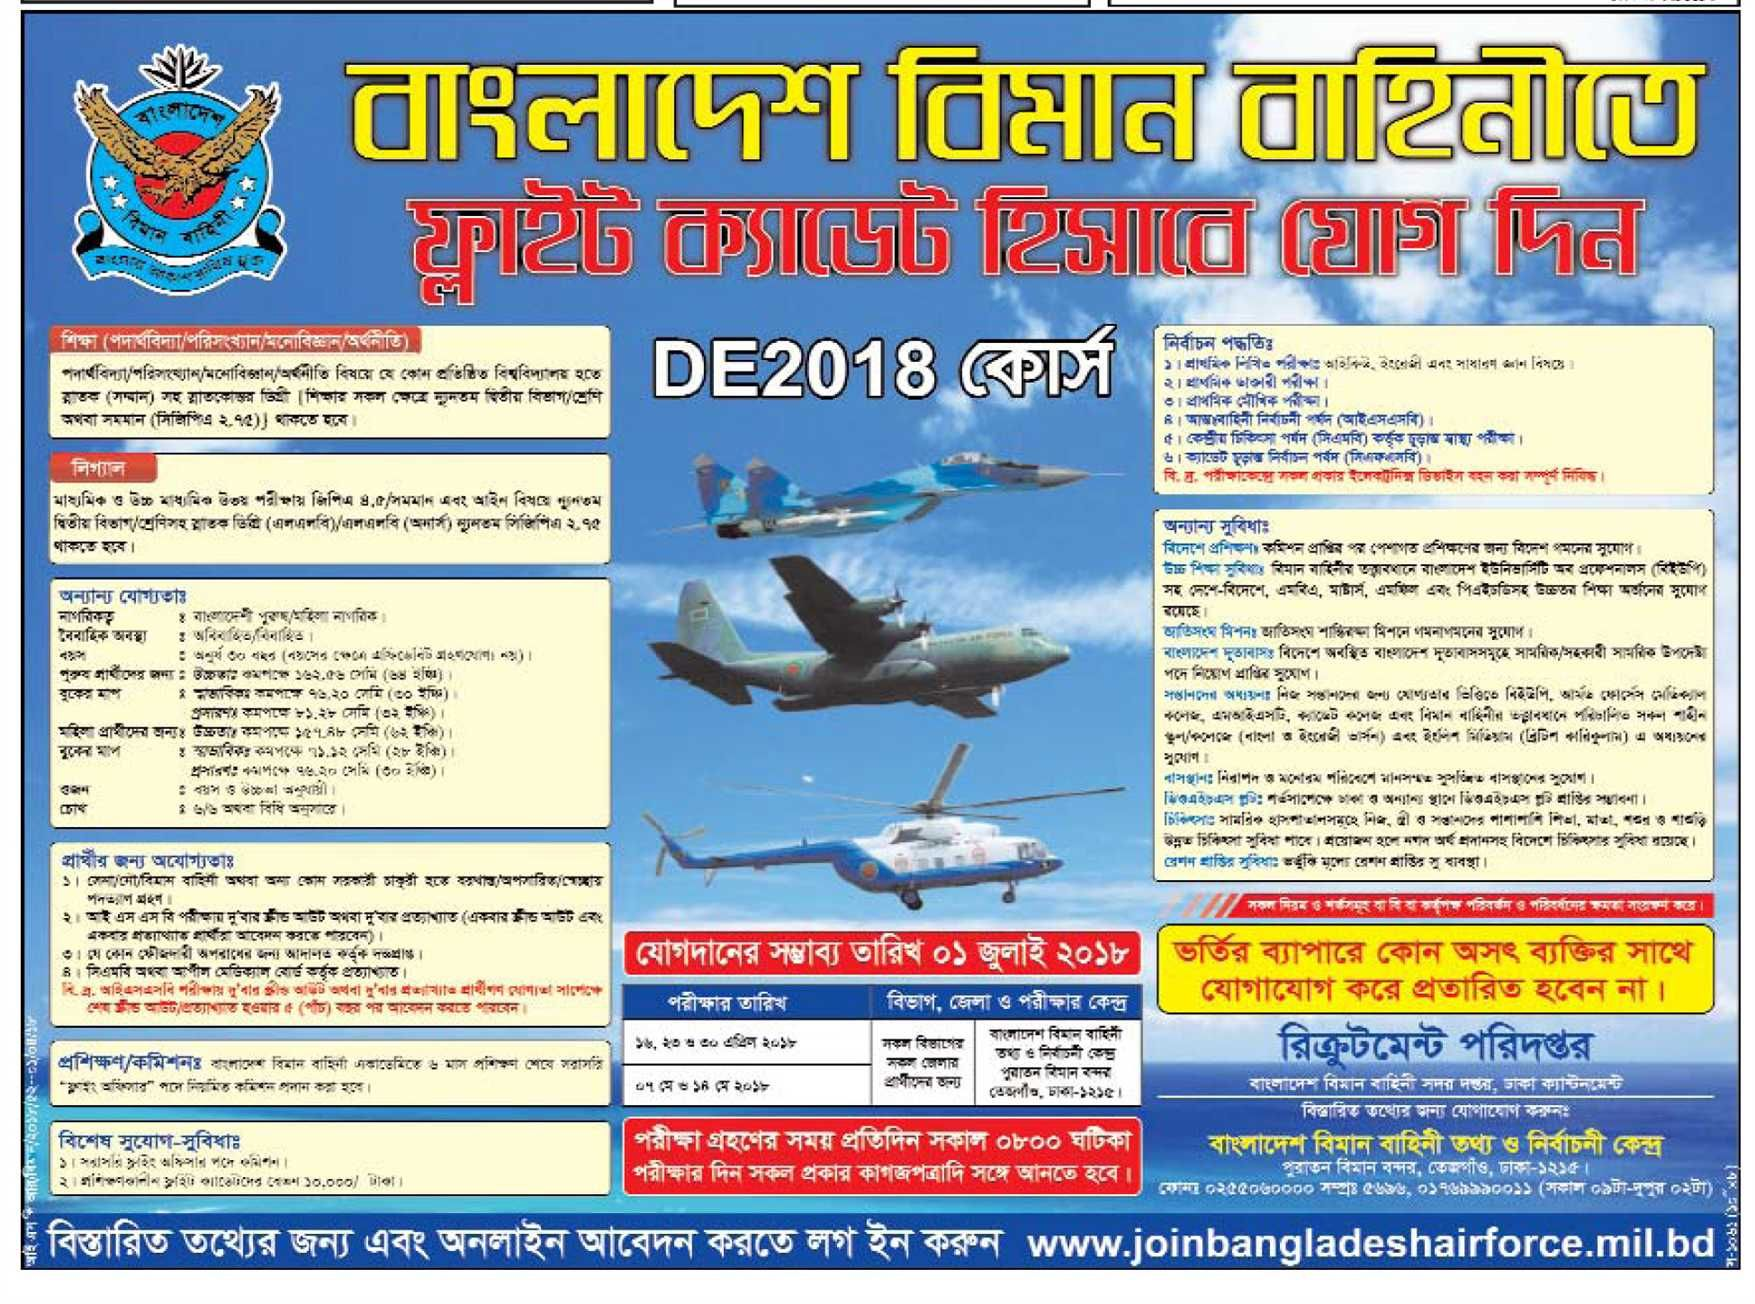 Bangladesh Air Force Baf Job Circular 2018 Published Today On Their Authority Job Vacancy Notice New Job Circular At Www Air Force Jobs Job Circular Air Force